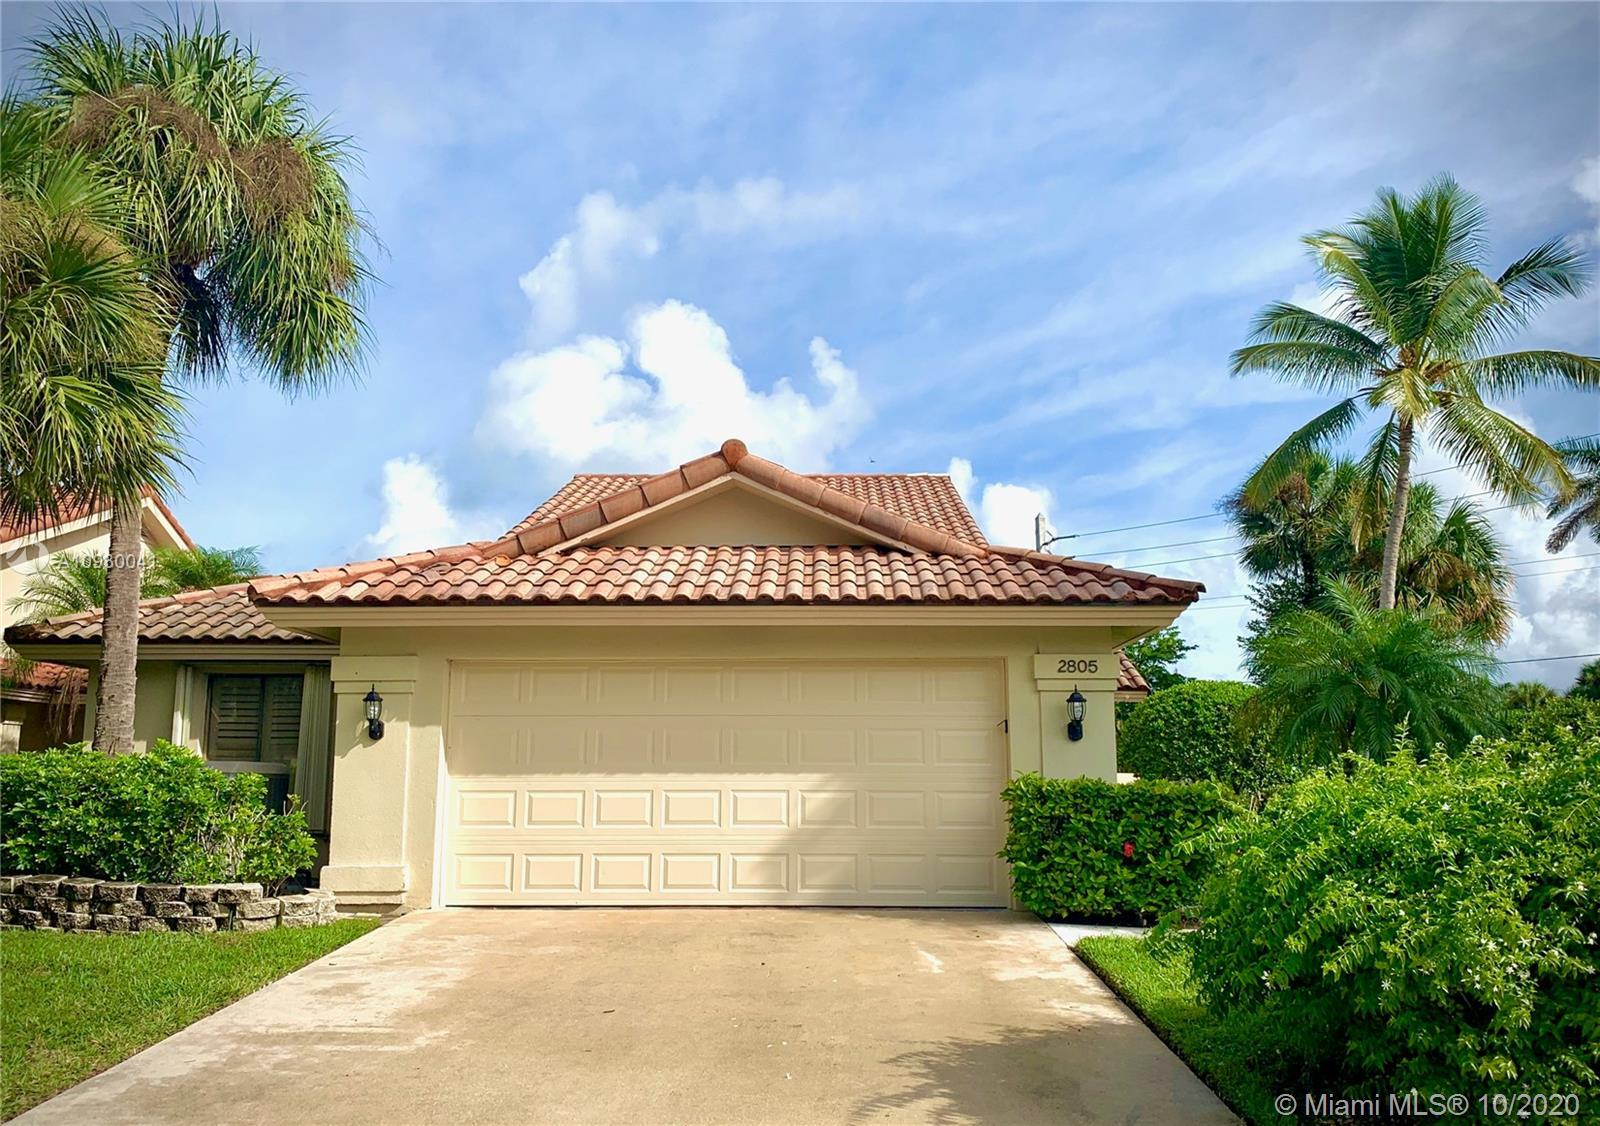 THE SERENITY OF WEST PALM BEACH LIVING AT IT'S FINEST!  THIS SPACIOUS CORNER LOT OFFERS A 3 BEDROOM